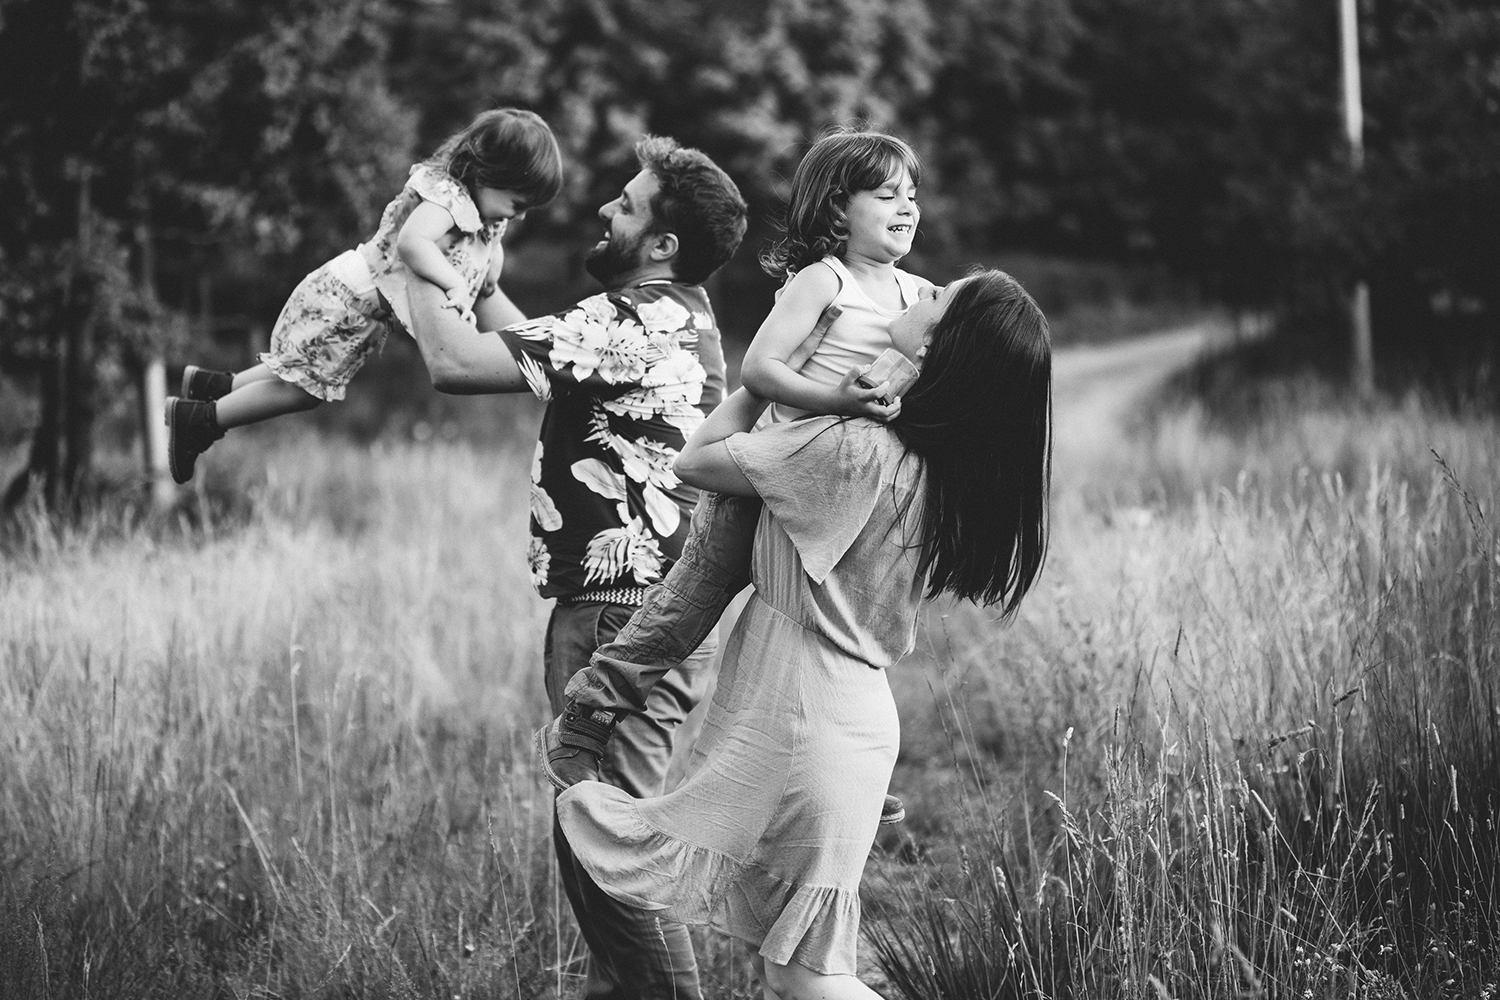 rebecca rinaldi photography. family playing in the field.